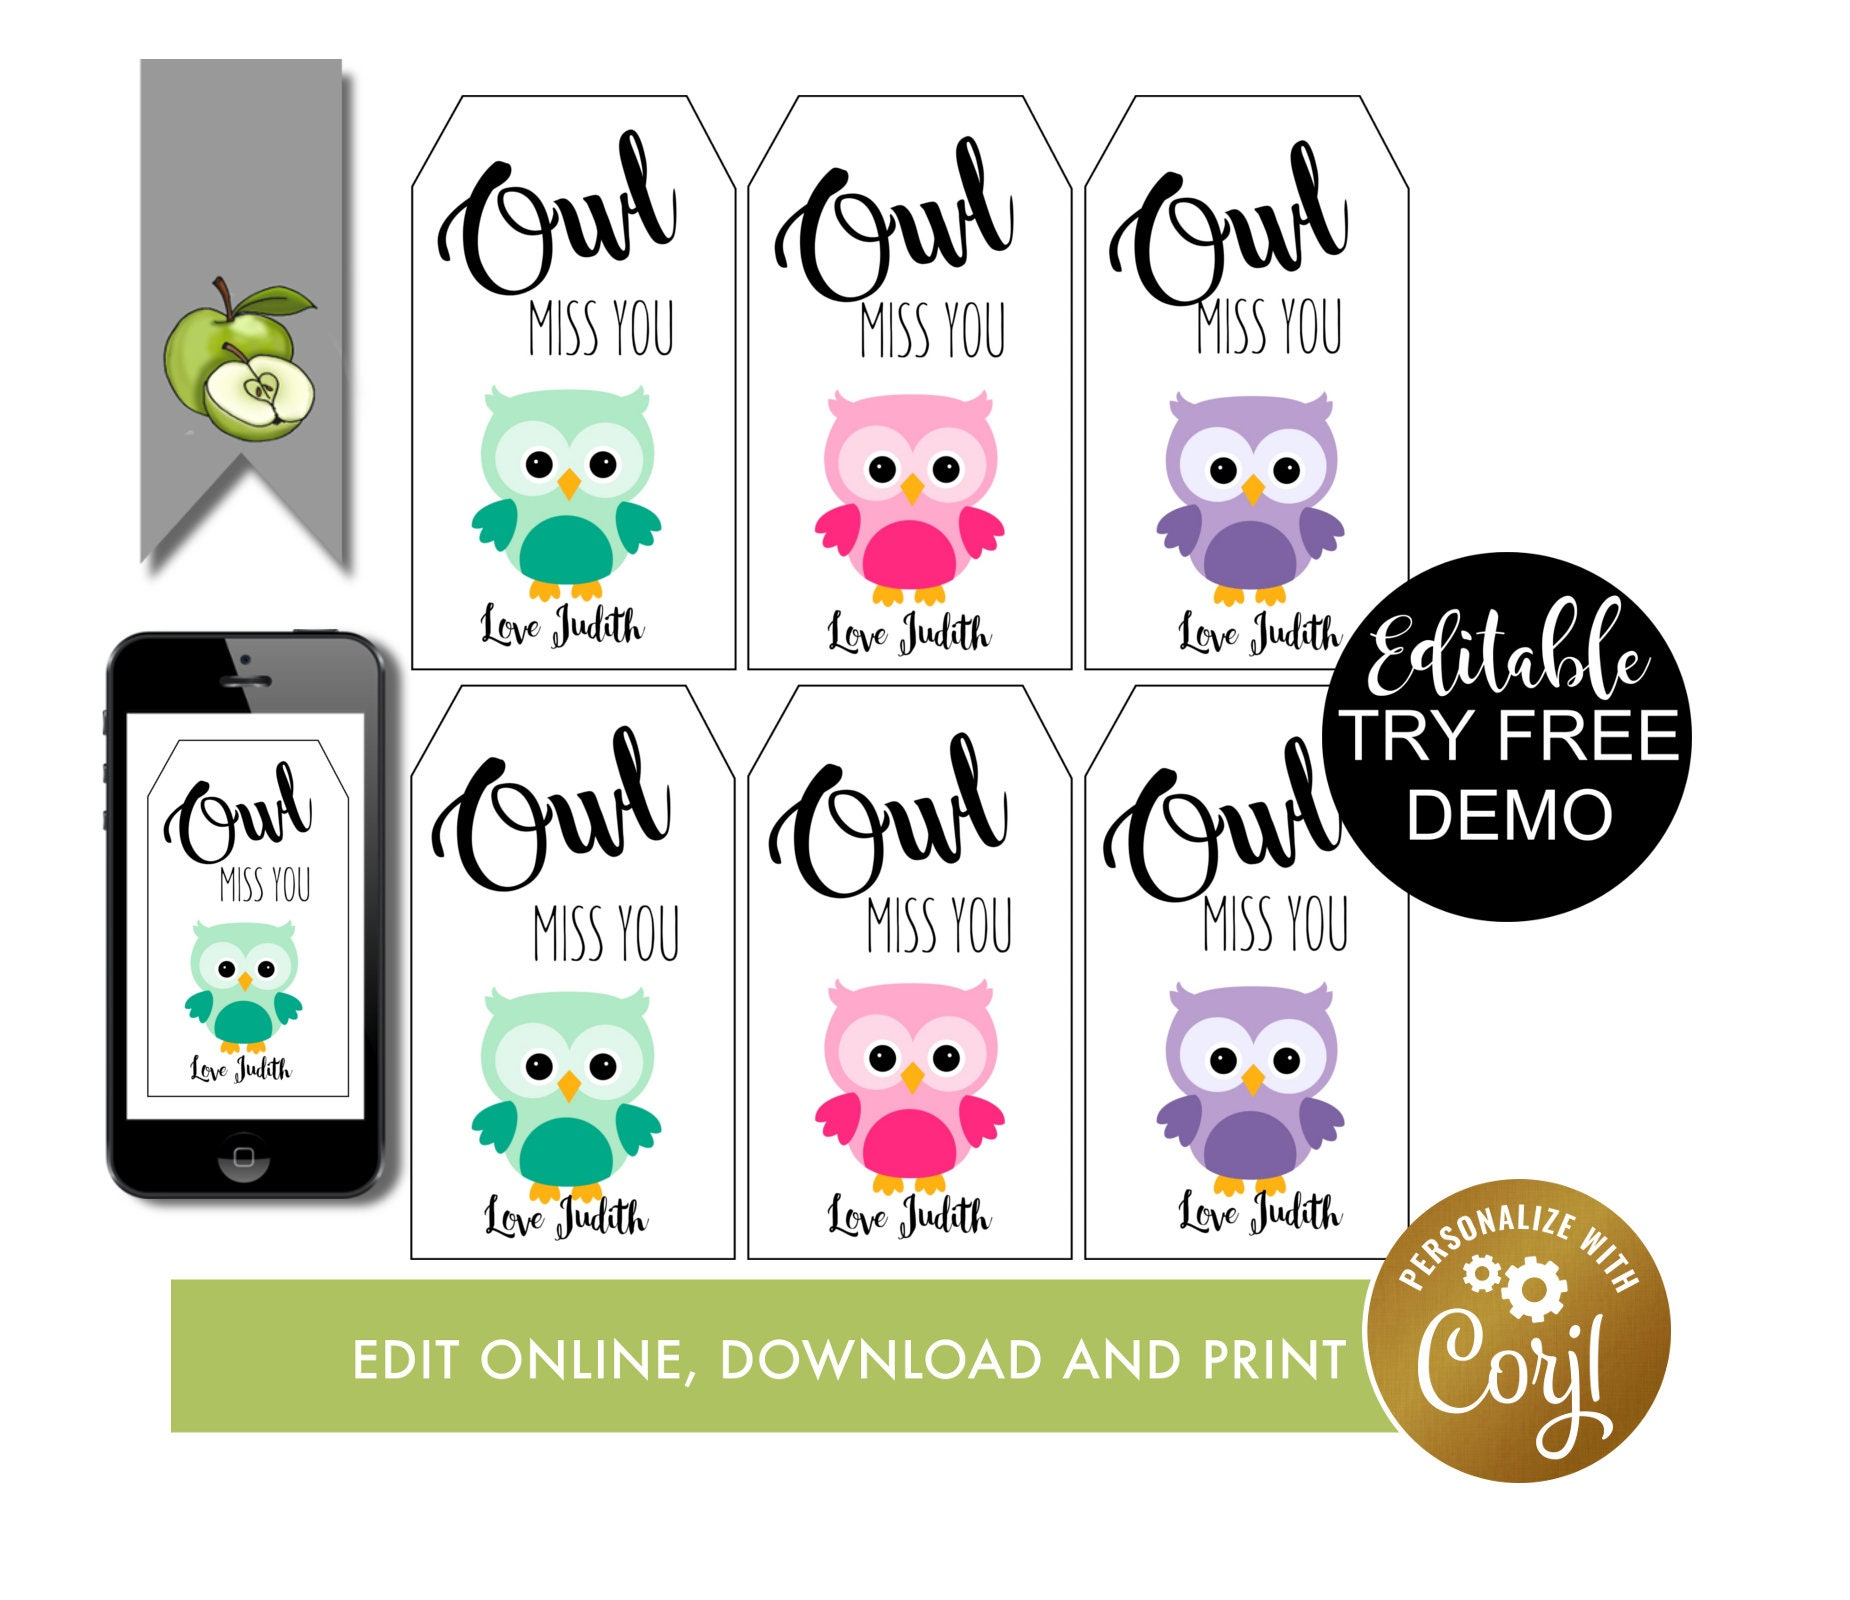 graphic relating to Owl Miss You Printable titled pal owl reward tag, editable owl pass up oneself, leaving tag, past working day of college or university, owl miss out on on your own this summer season, thank your self tag, Trainer tag, Printable